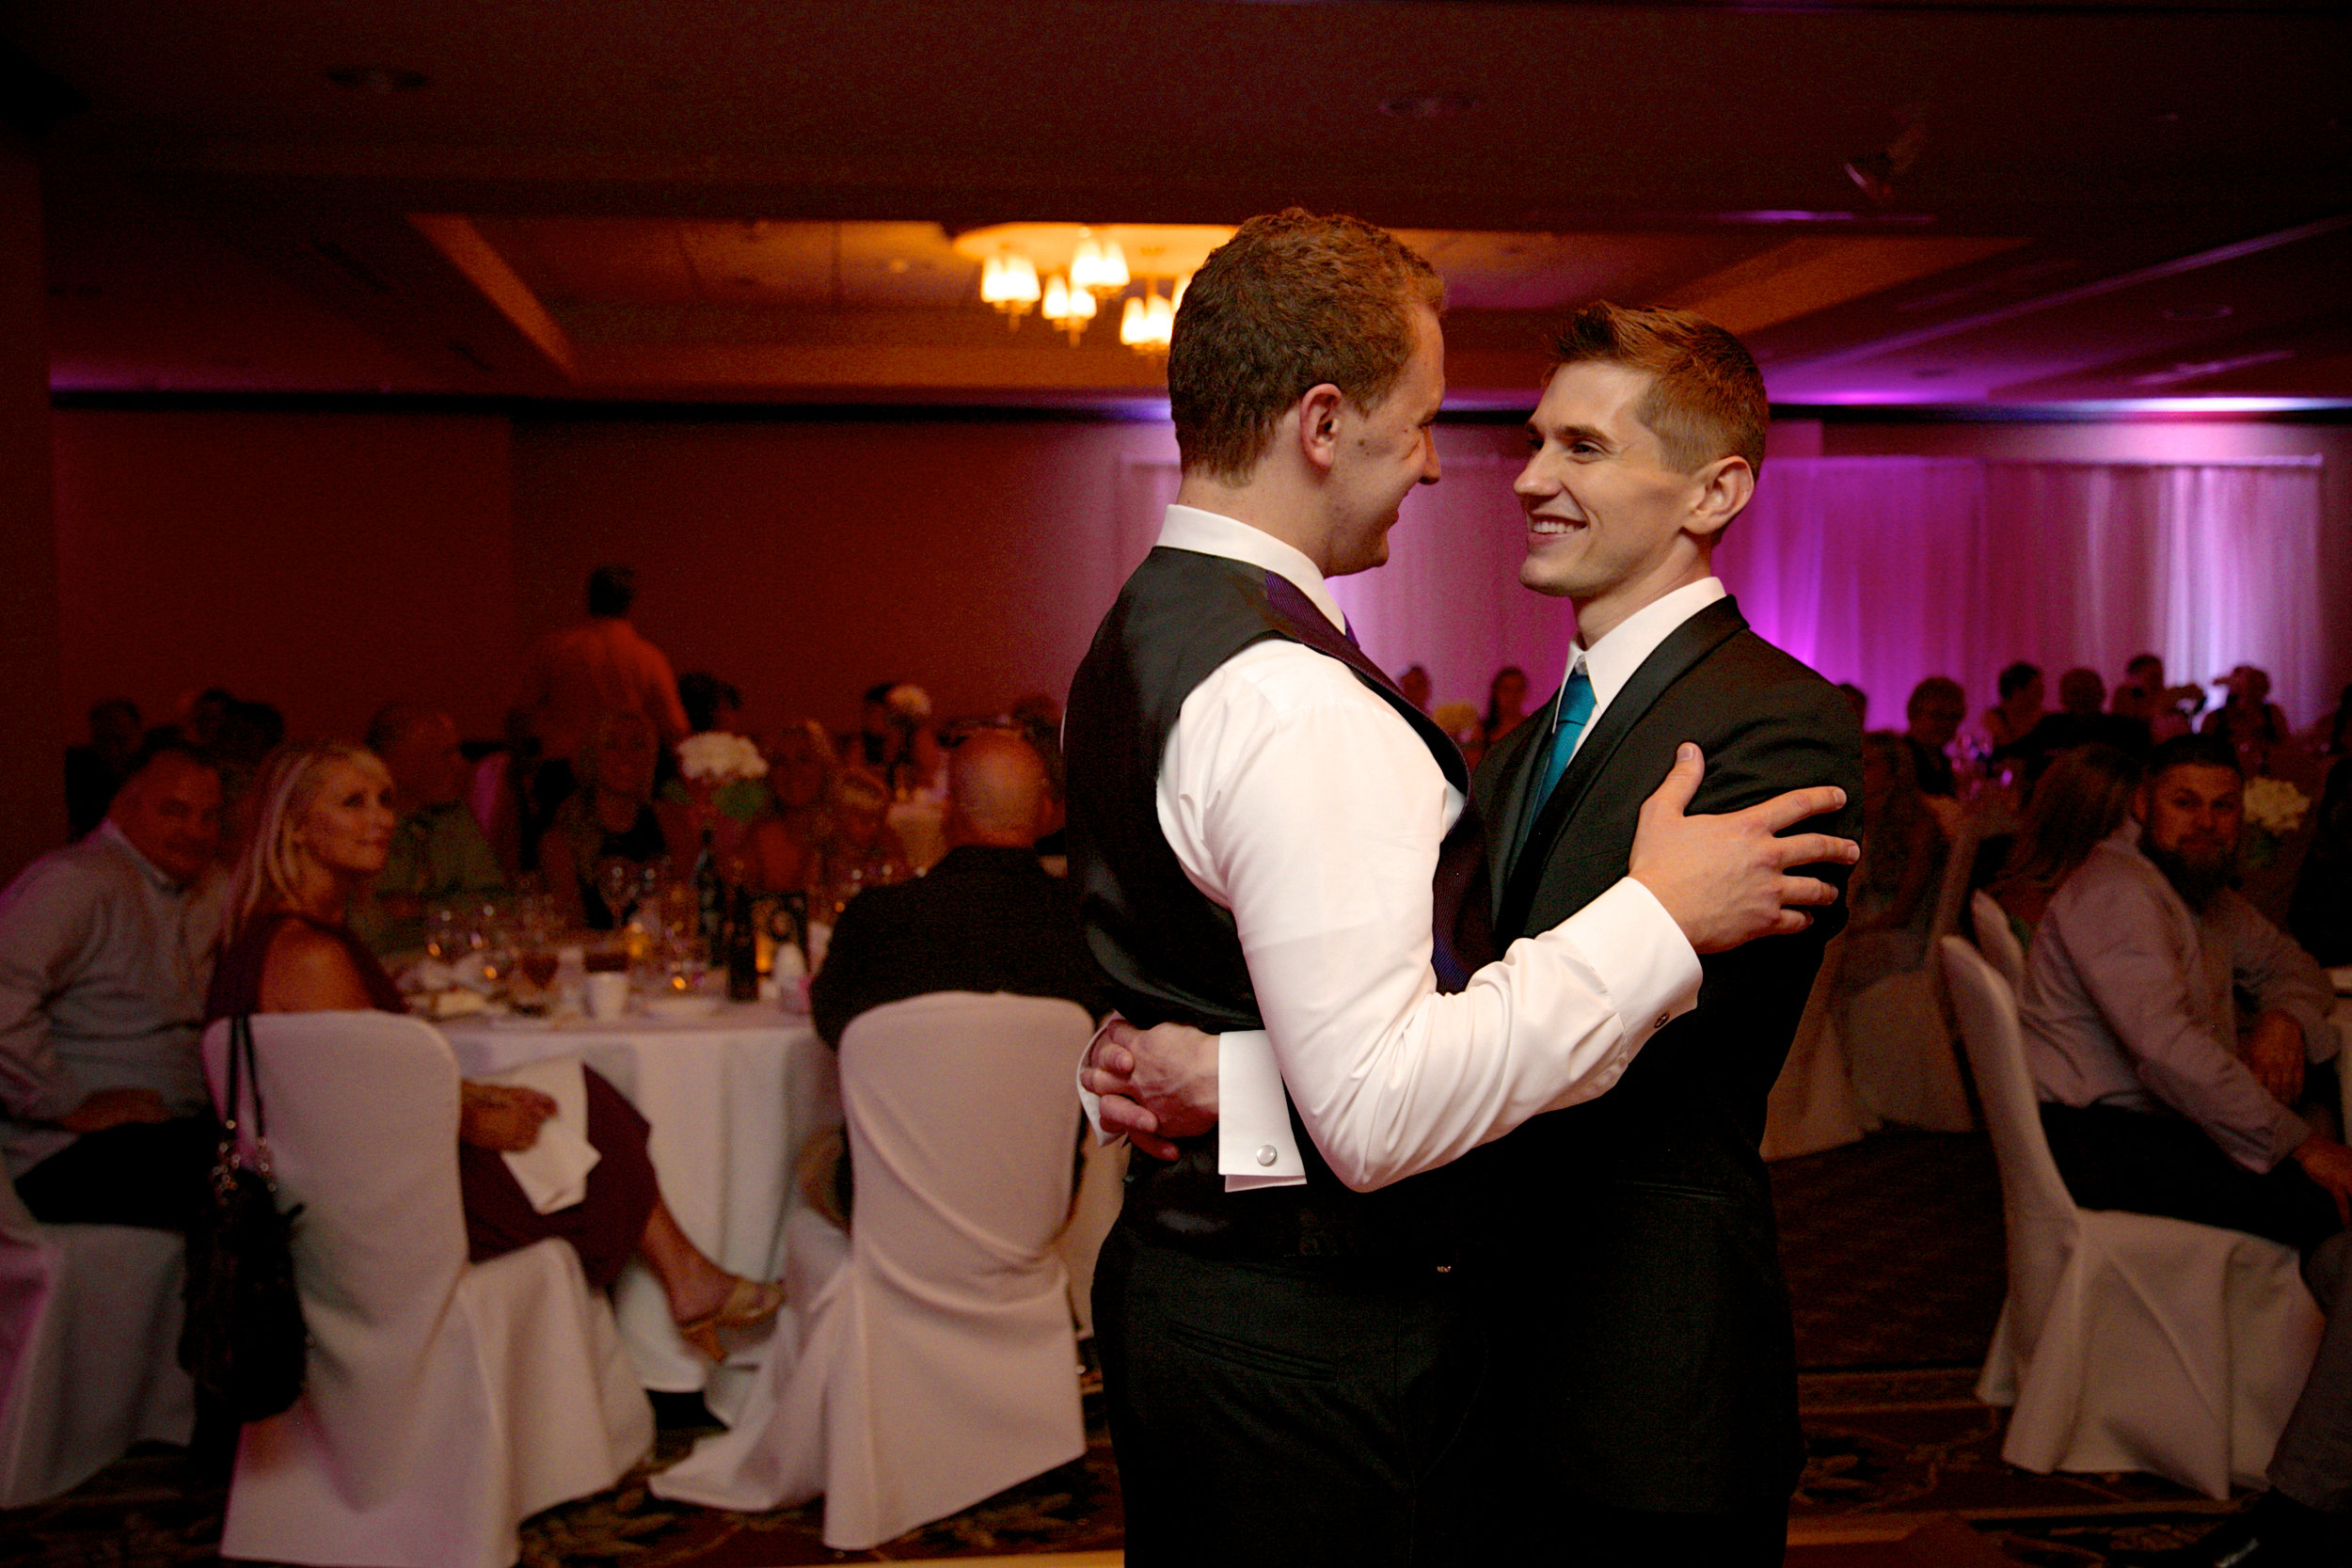 David and Trevor wedding by RJL photo 464.jpg